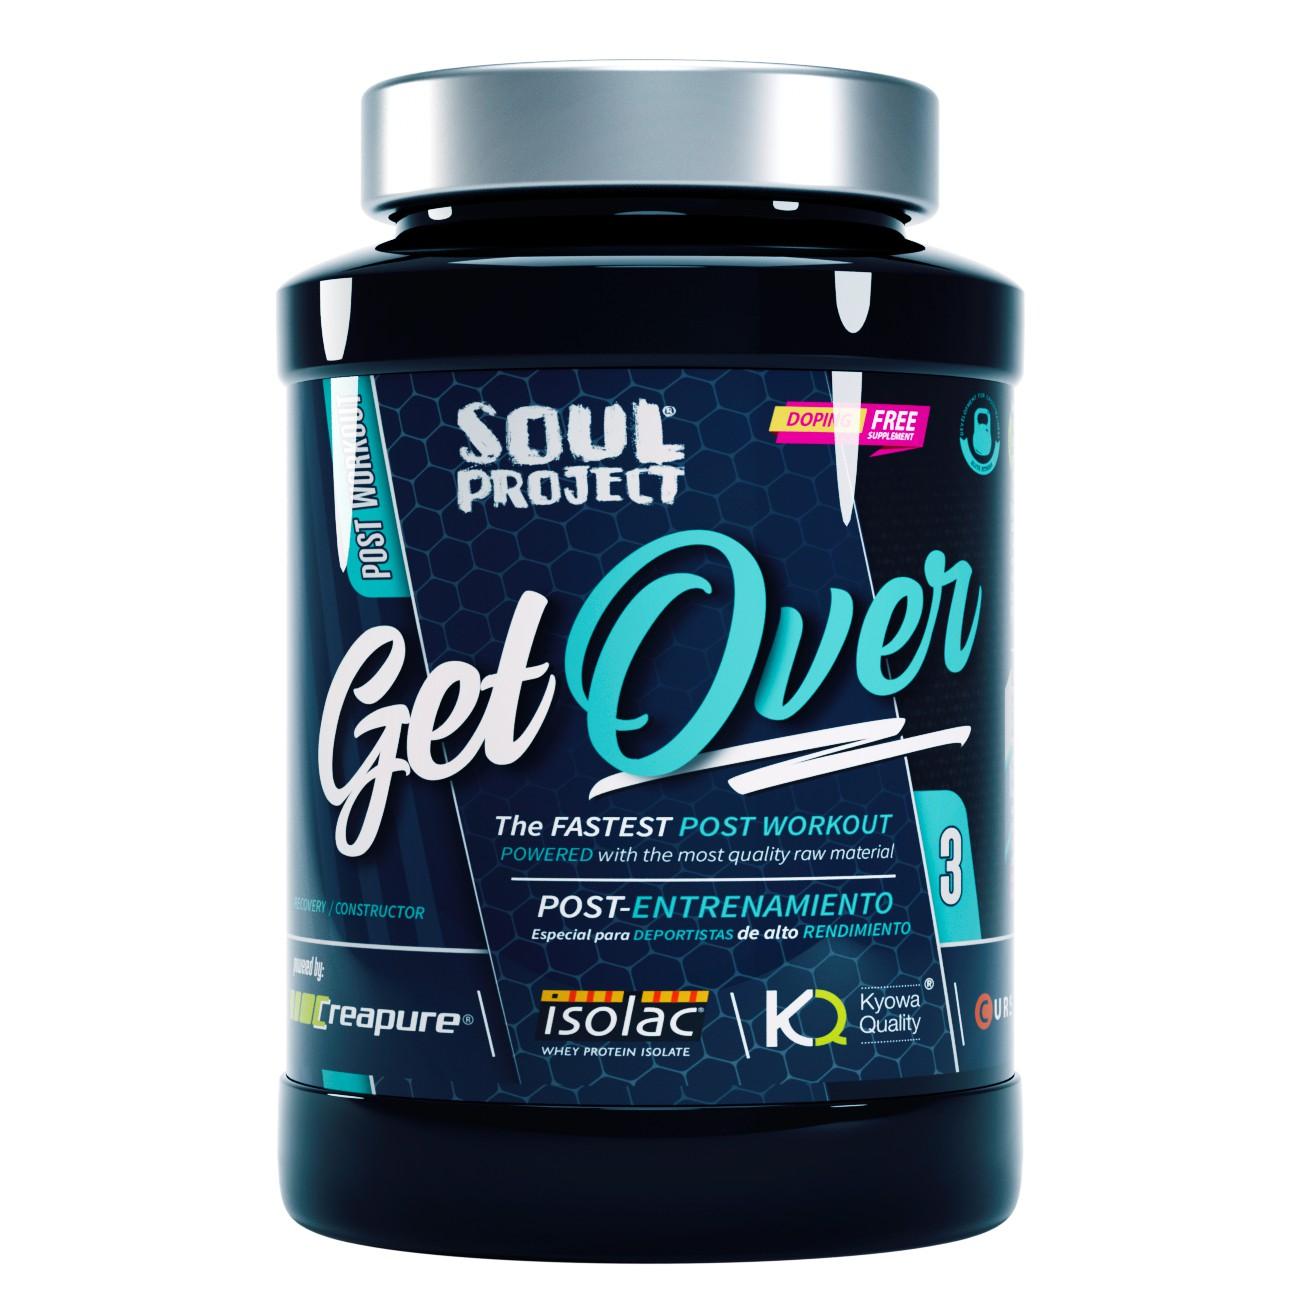 GET OVER POST-TRAINING RECUPERADORES Soul Project